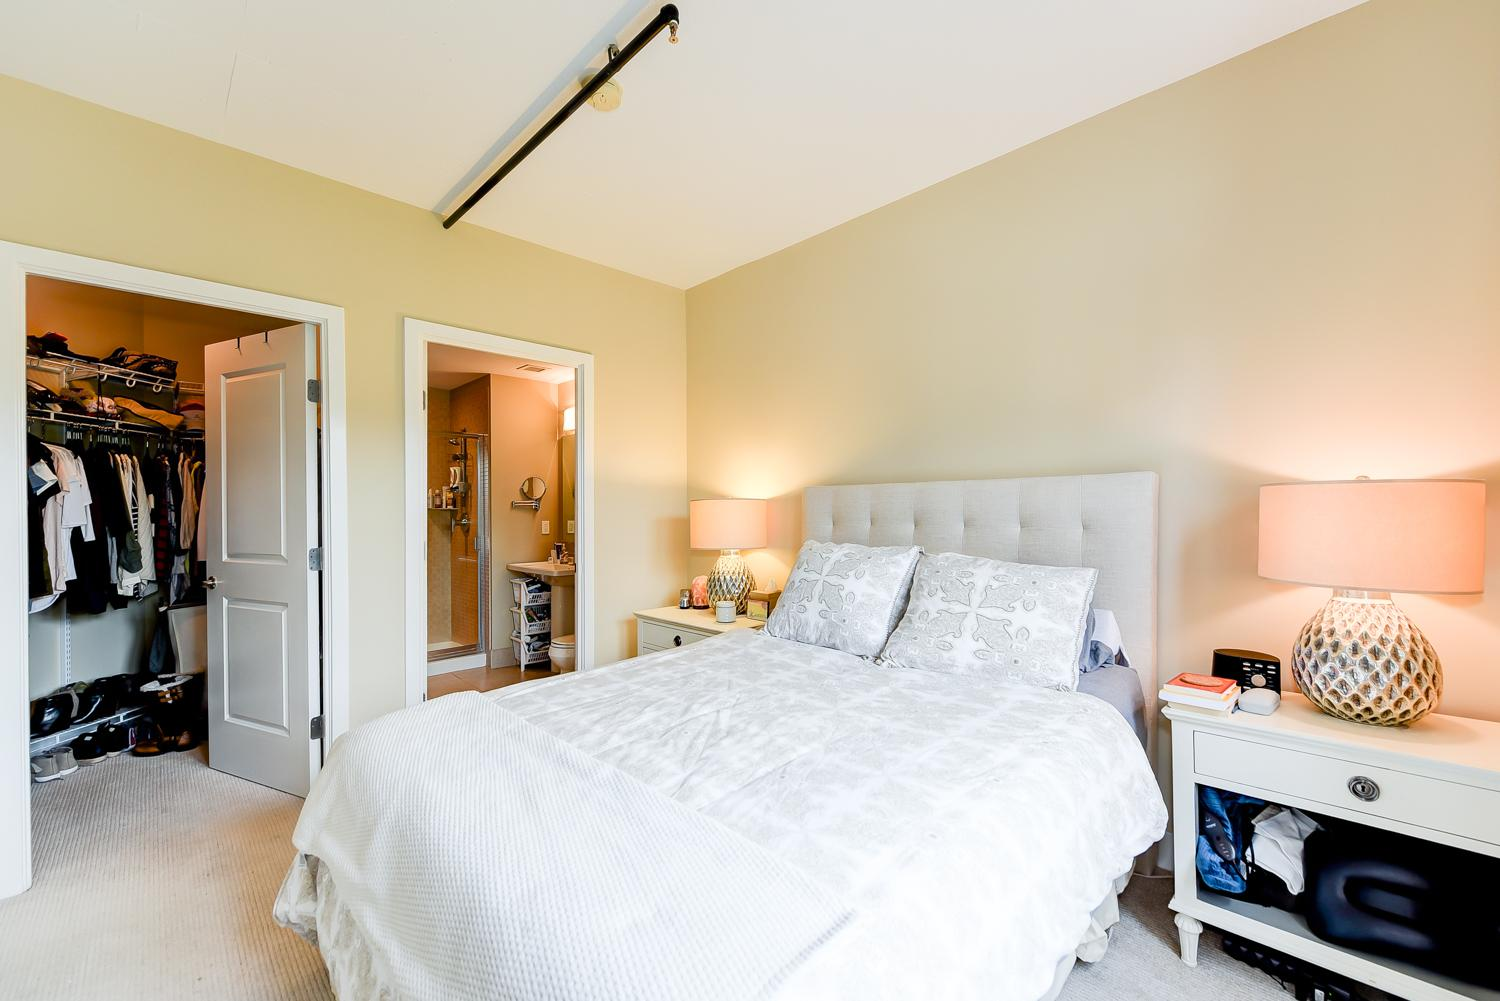 Additional photo for property listing at 2125 14th St NW #328 2125 14th St NW #328 Washington, District Of Columbia 20009 United States